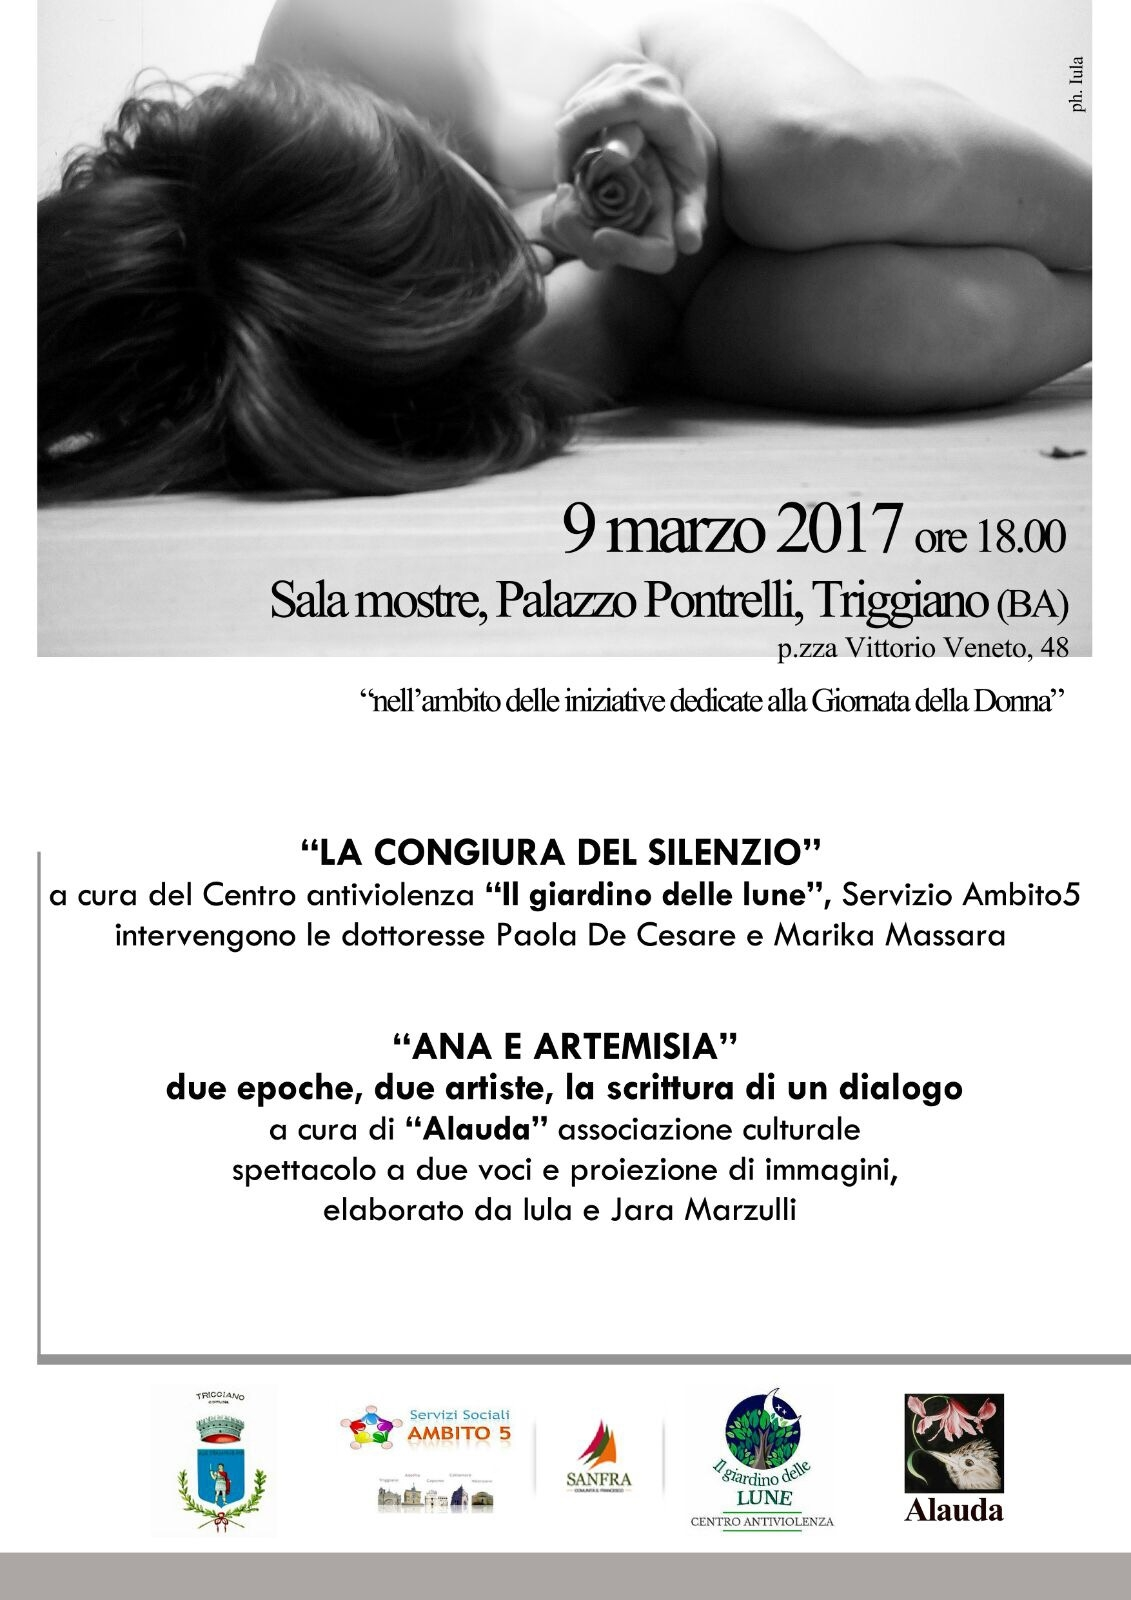 http://www.ambitosociale5.it/attachments/article/254/Evento%209%20Marzo%202017.JPG